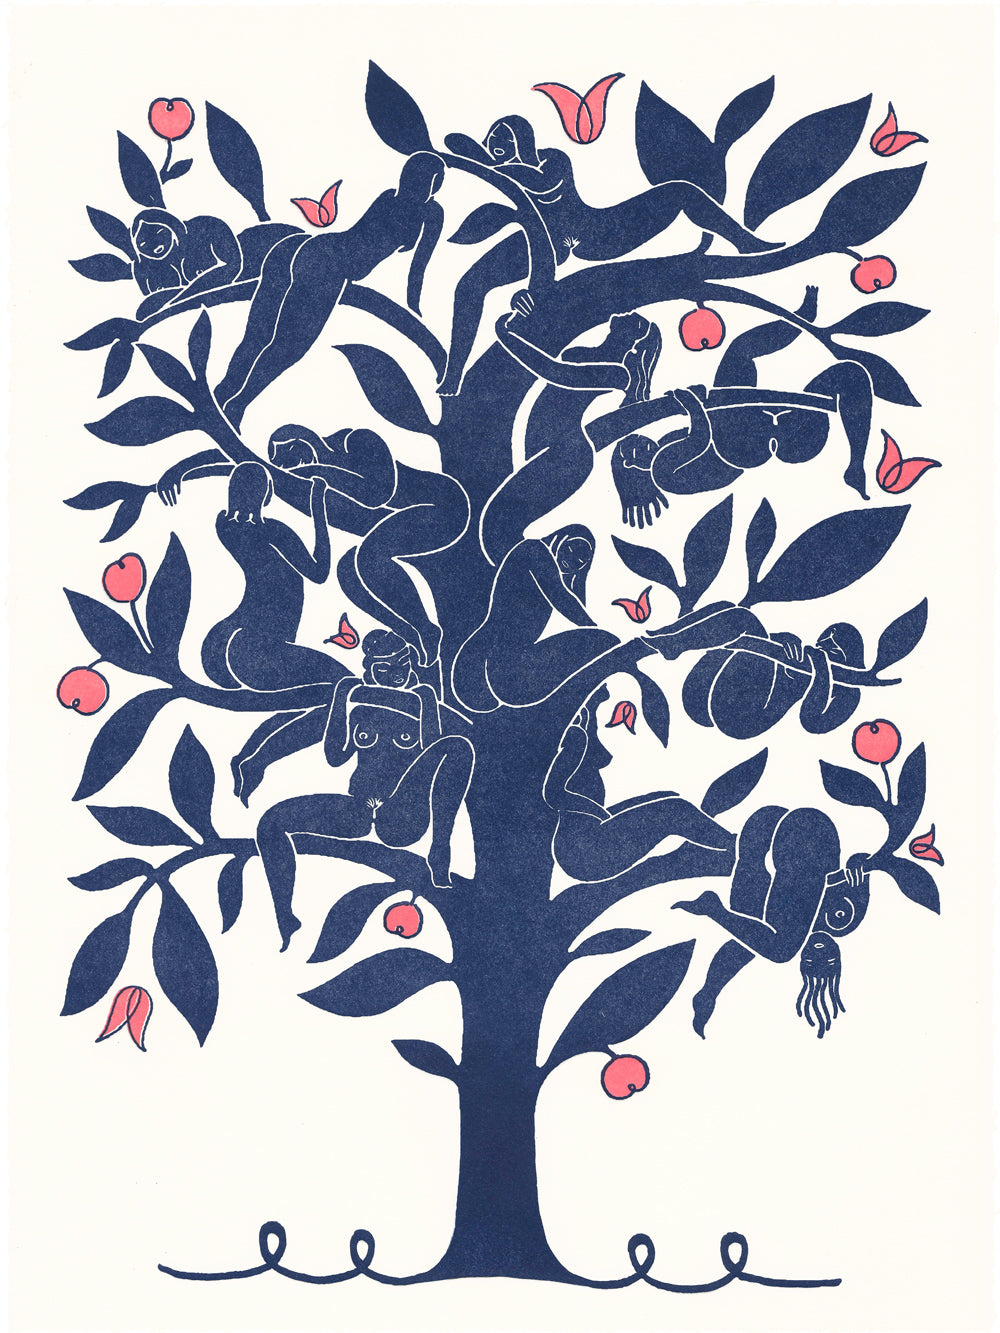 Peach Tree - New Limited Edition Prints